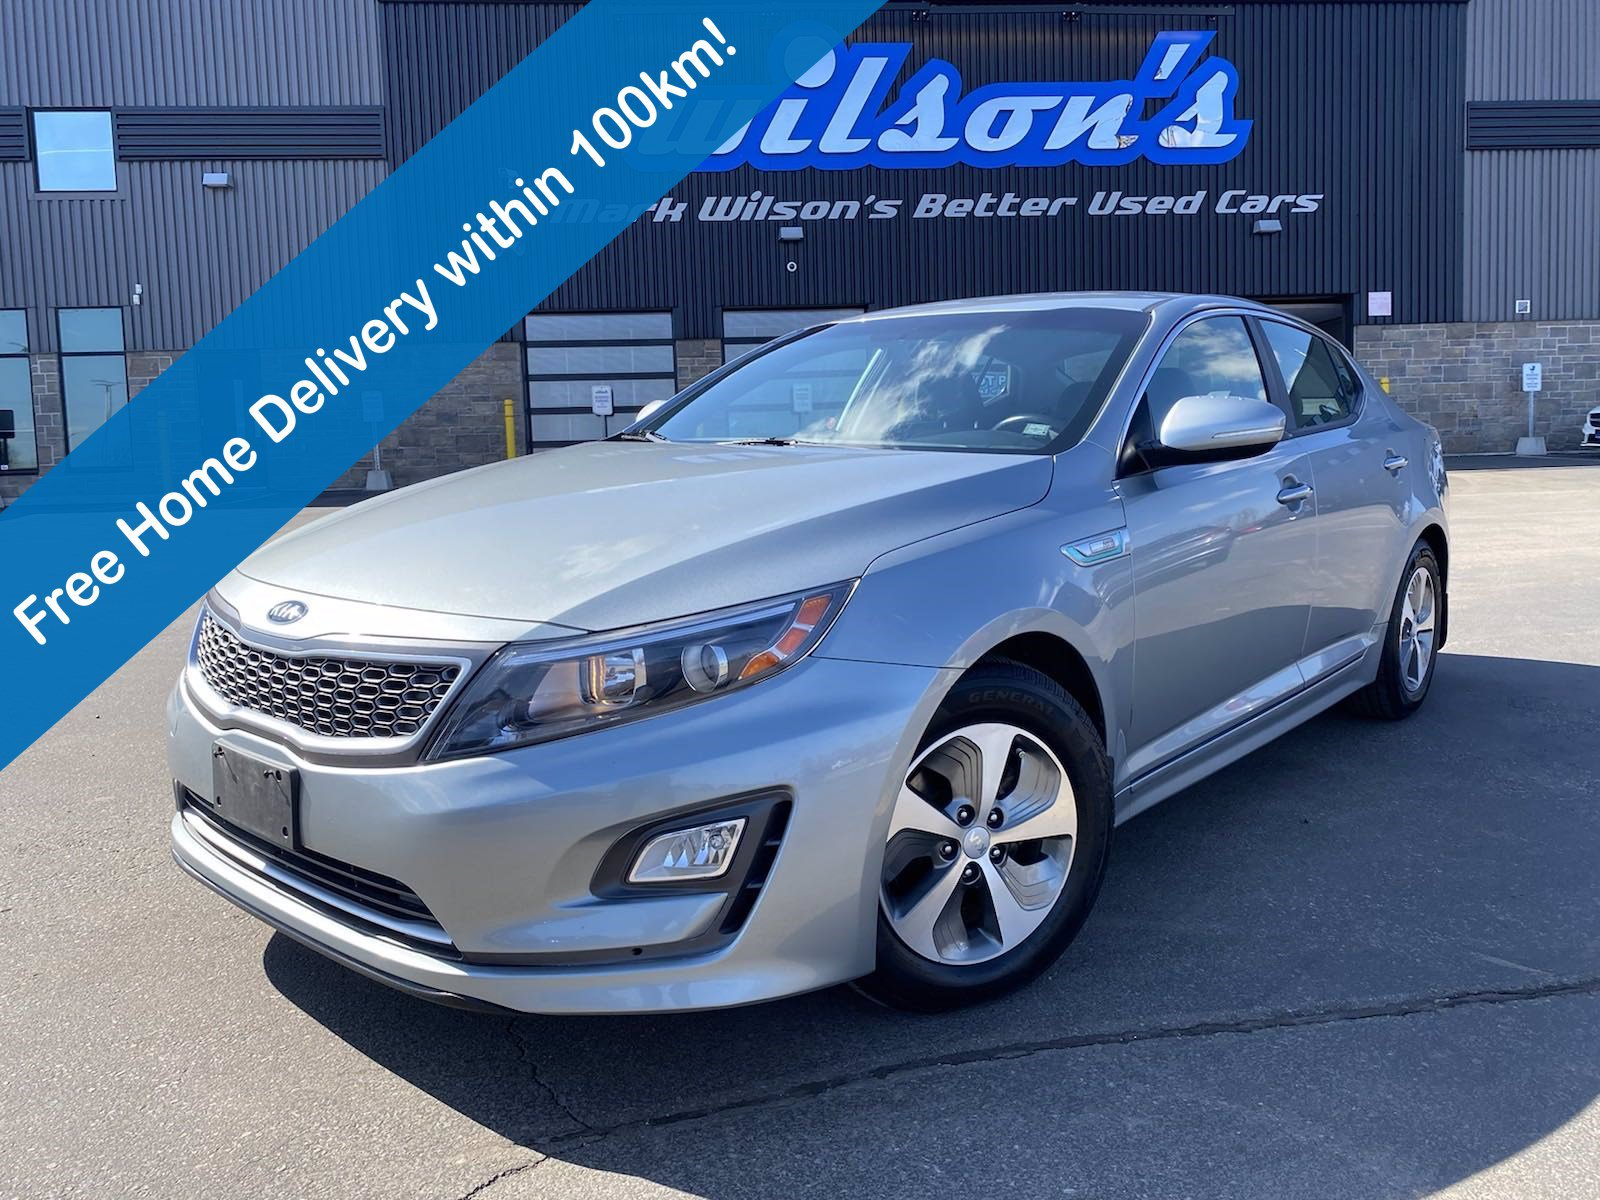 Certified Pre-Owned 2015 Kia Optima Hybrid LX, Heated Seats, Rear Camera, Bluetooth, Keyless Entry, Alloy Wheels and more!